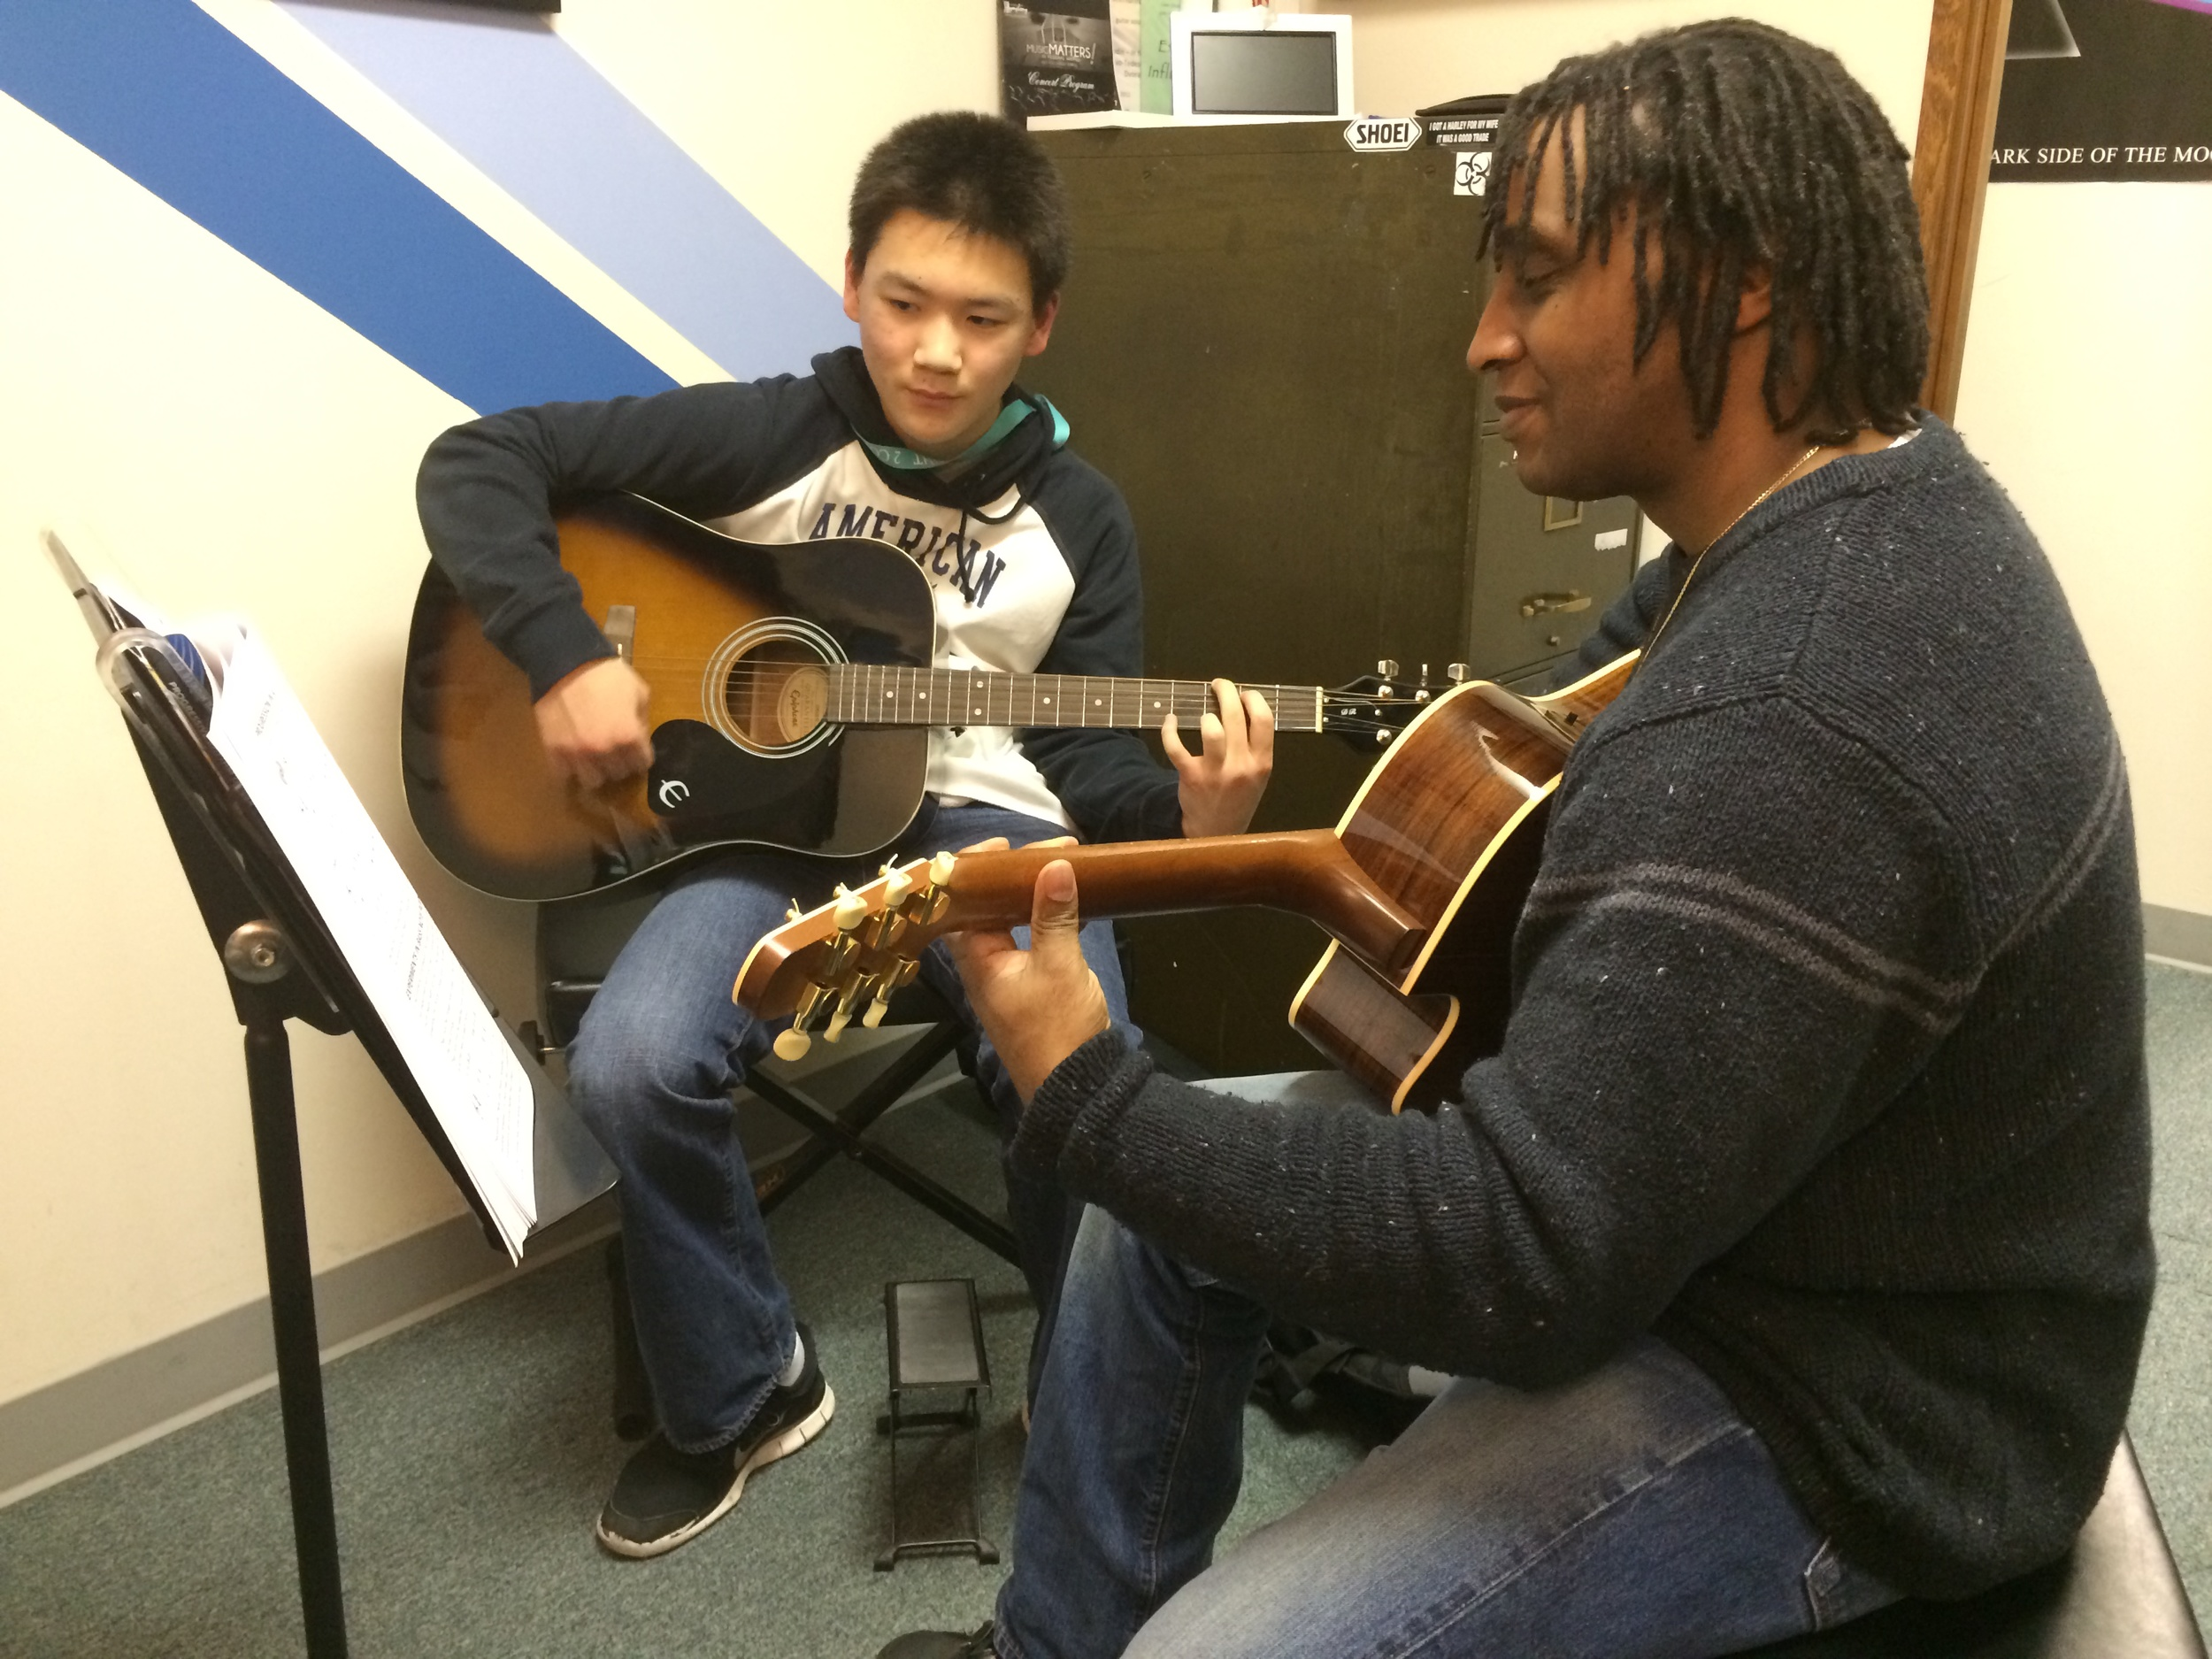 Leon-Christian-Guitar-Lessons-Acoustic-Federal-Way-Seattle-Tacoma-WA